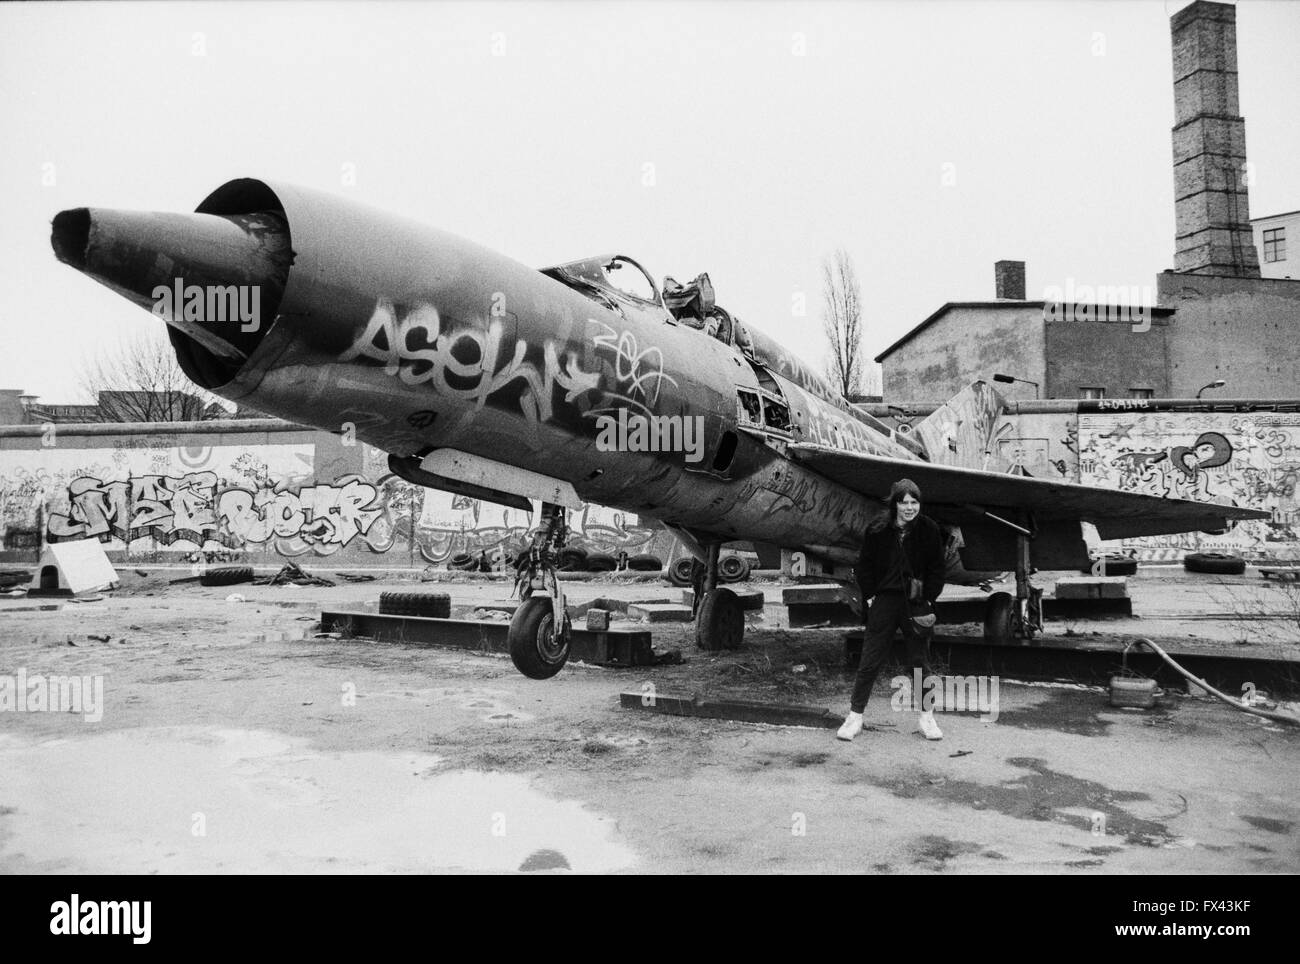 a-young-woman-in-front-of-soviet-mig-21-